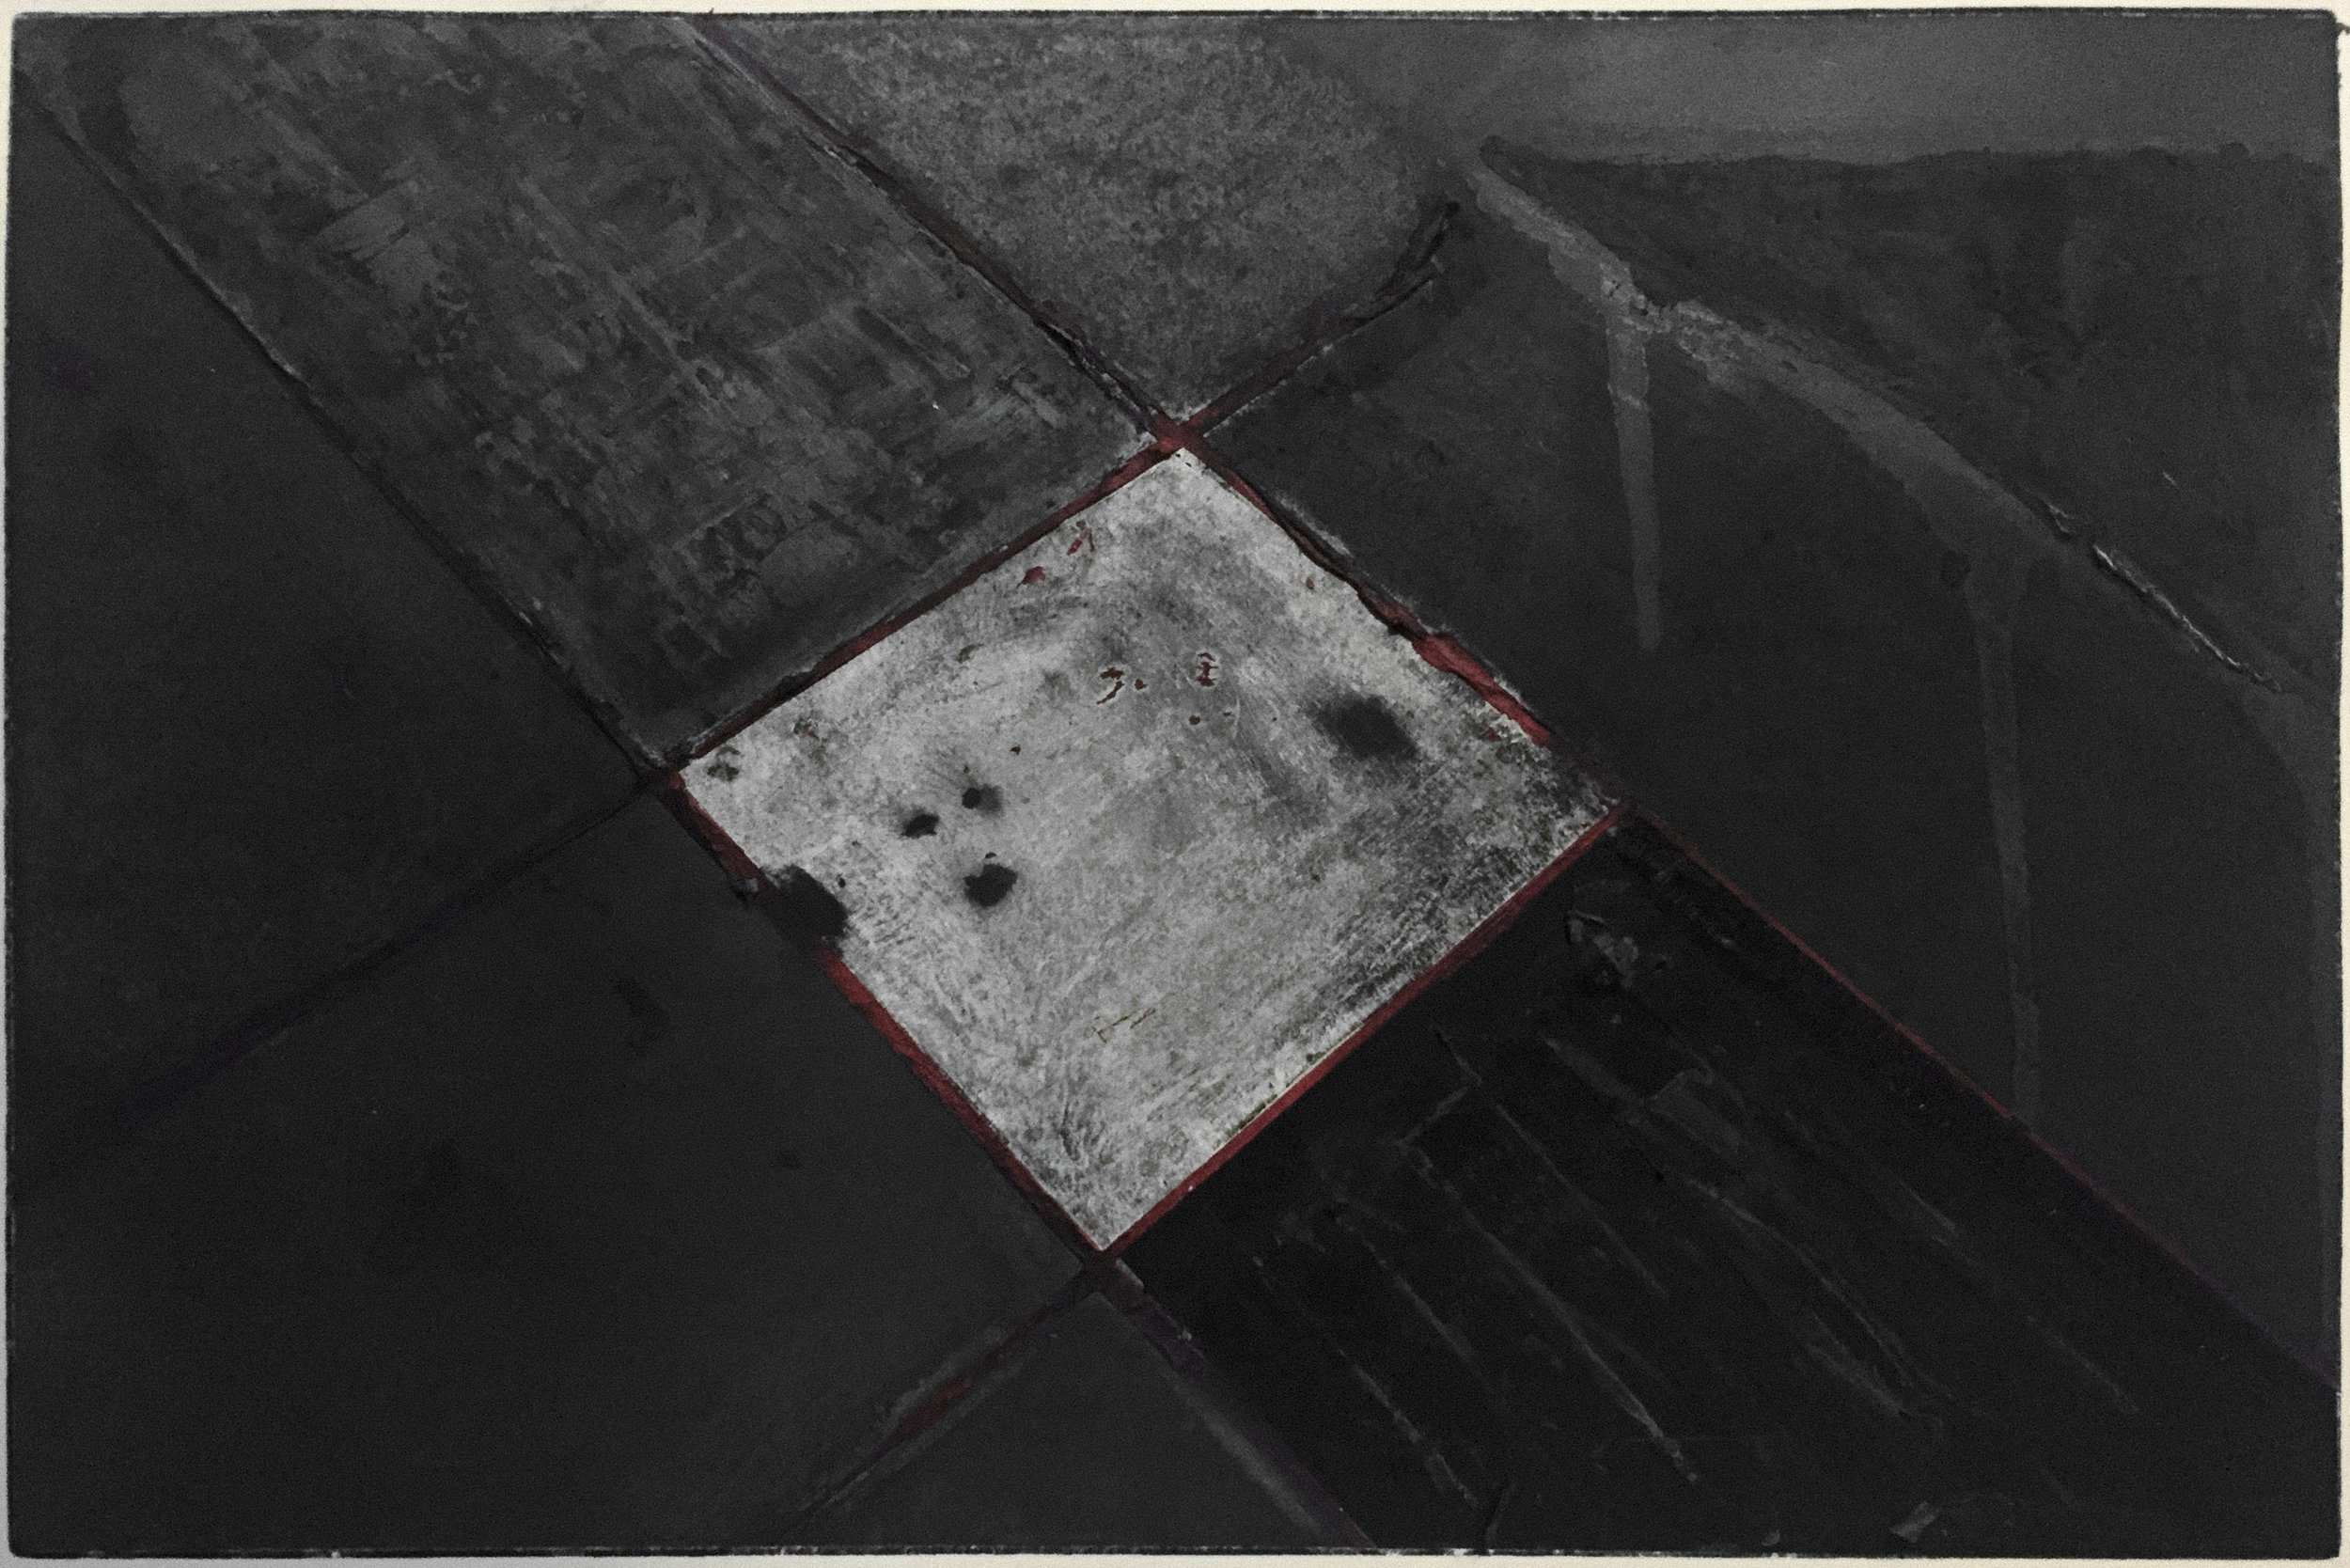 untitled #2 (cross section) charcoal, graphite, and masking tape over pigment print (11x14)